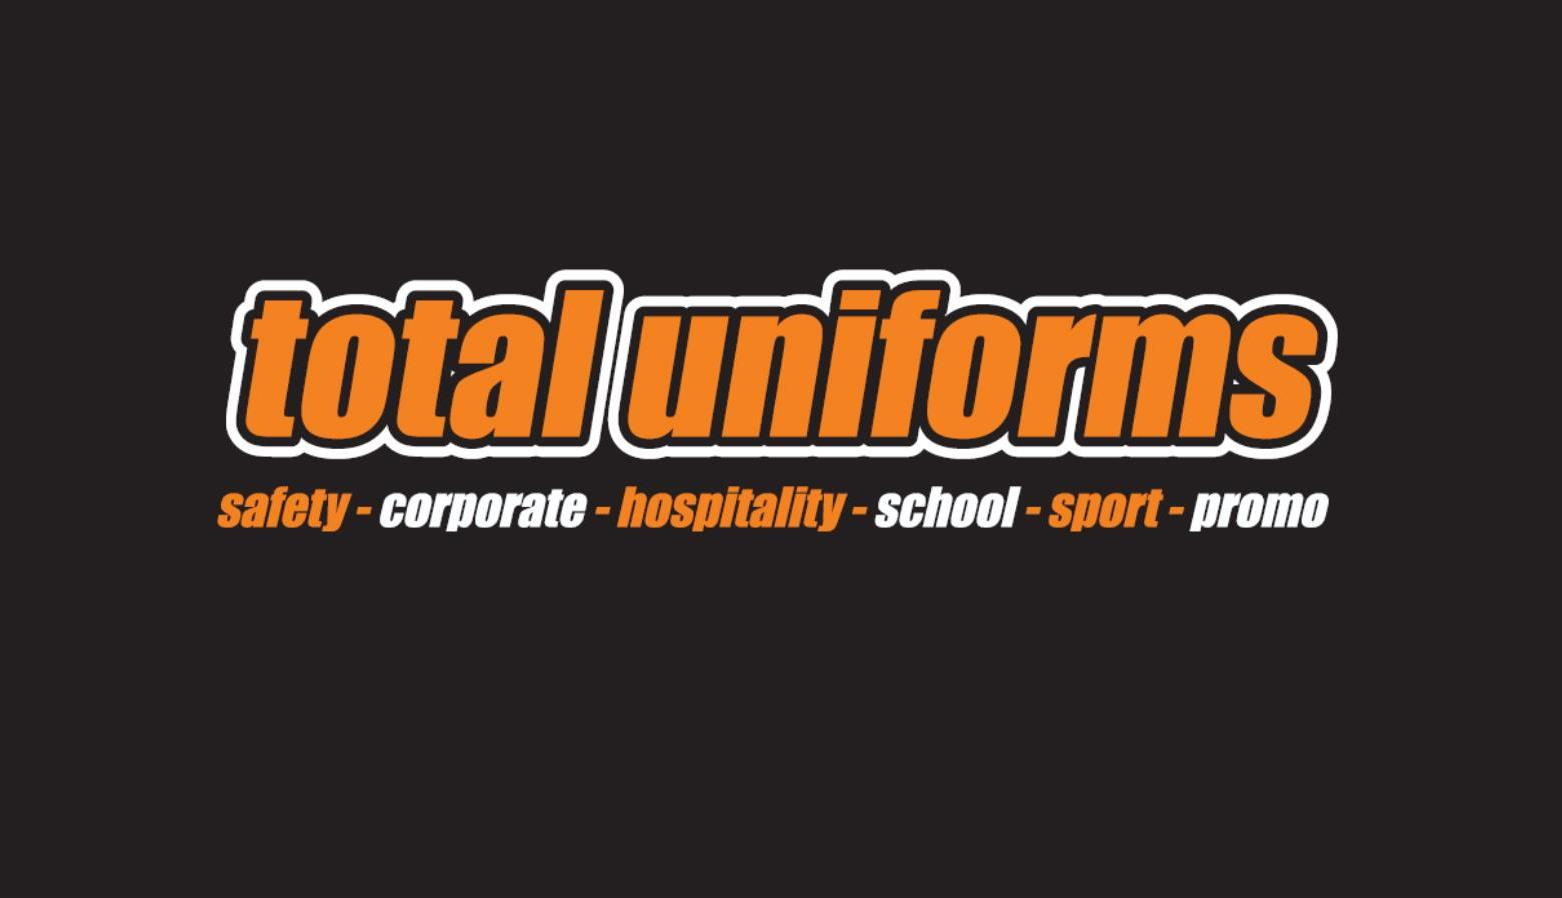 Total Uniforms